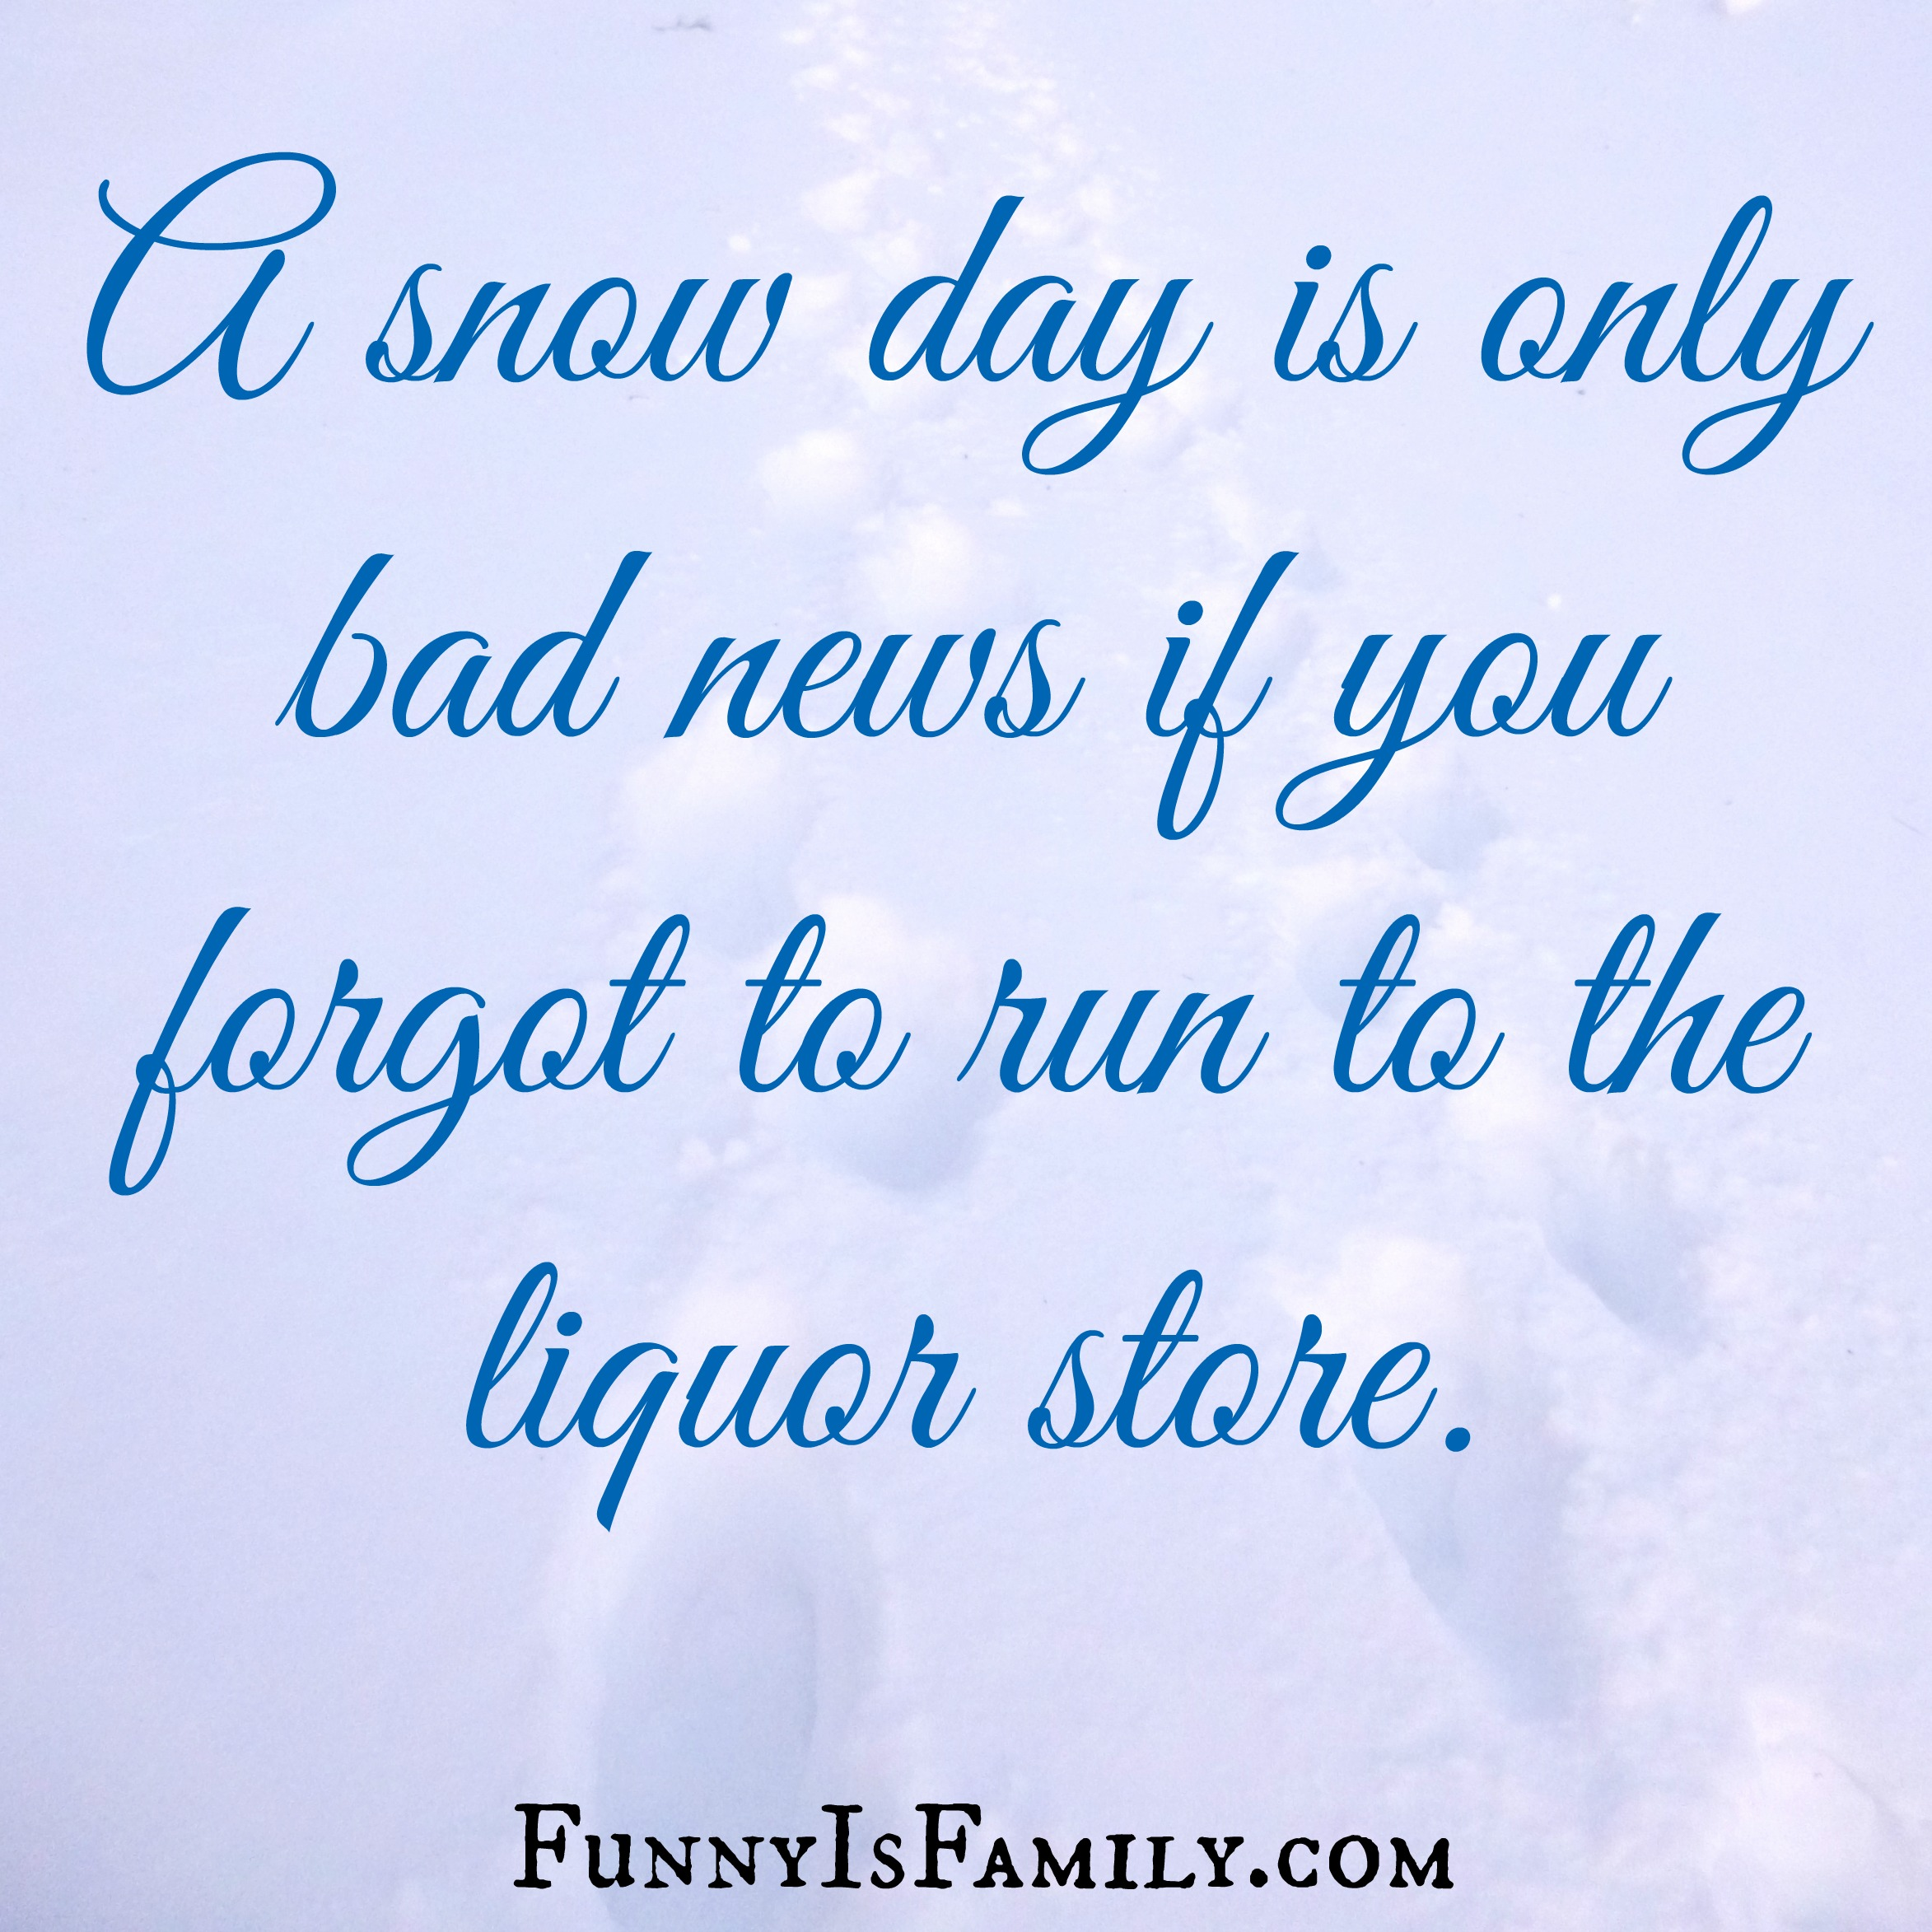 gallery for funny snow day quotes